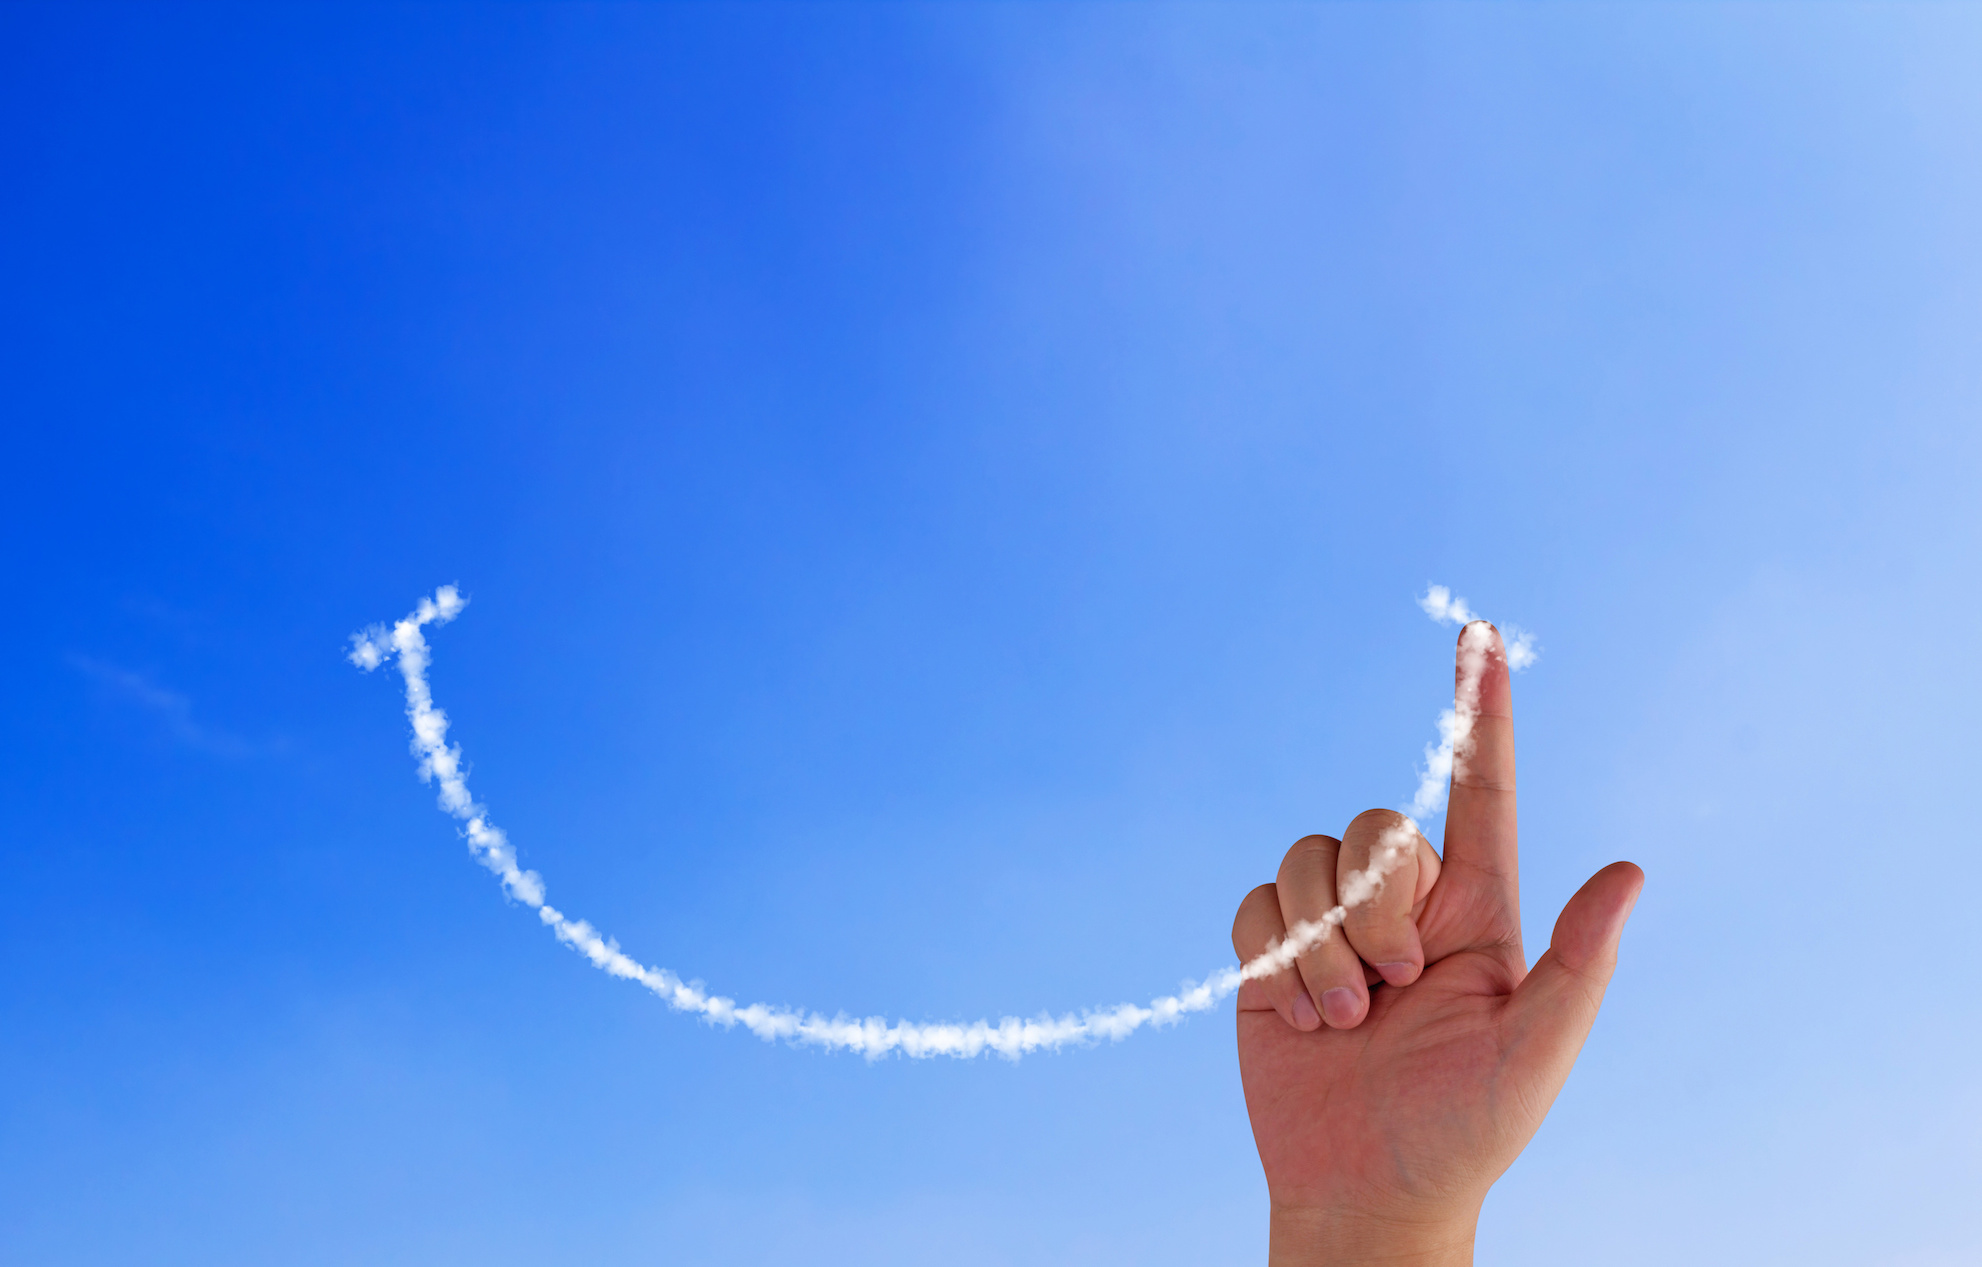 coaching blog - ever thought about having a whole day of positivity?